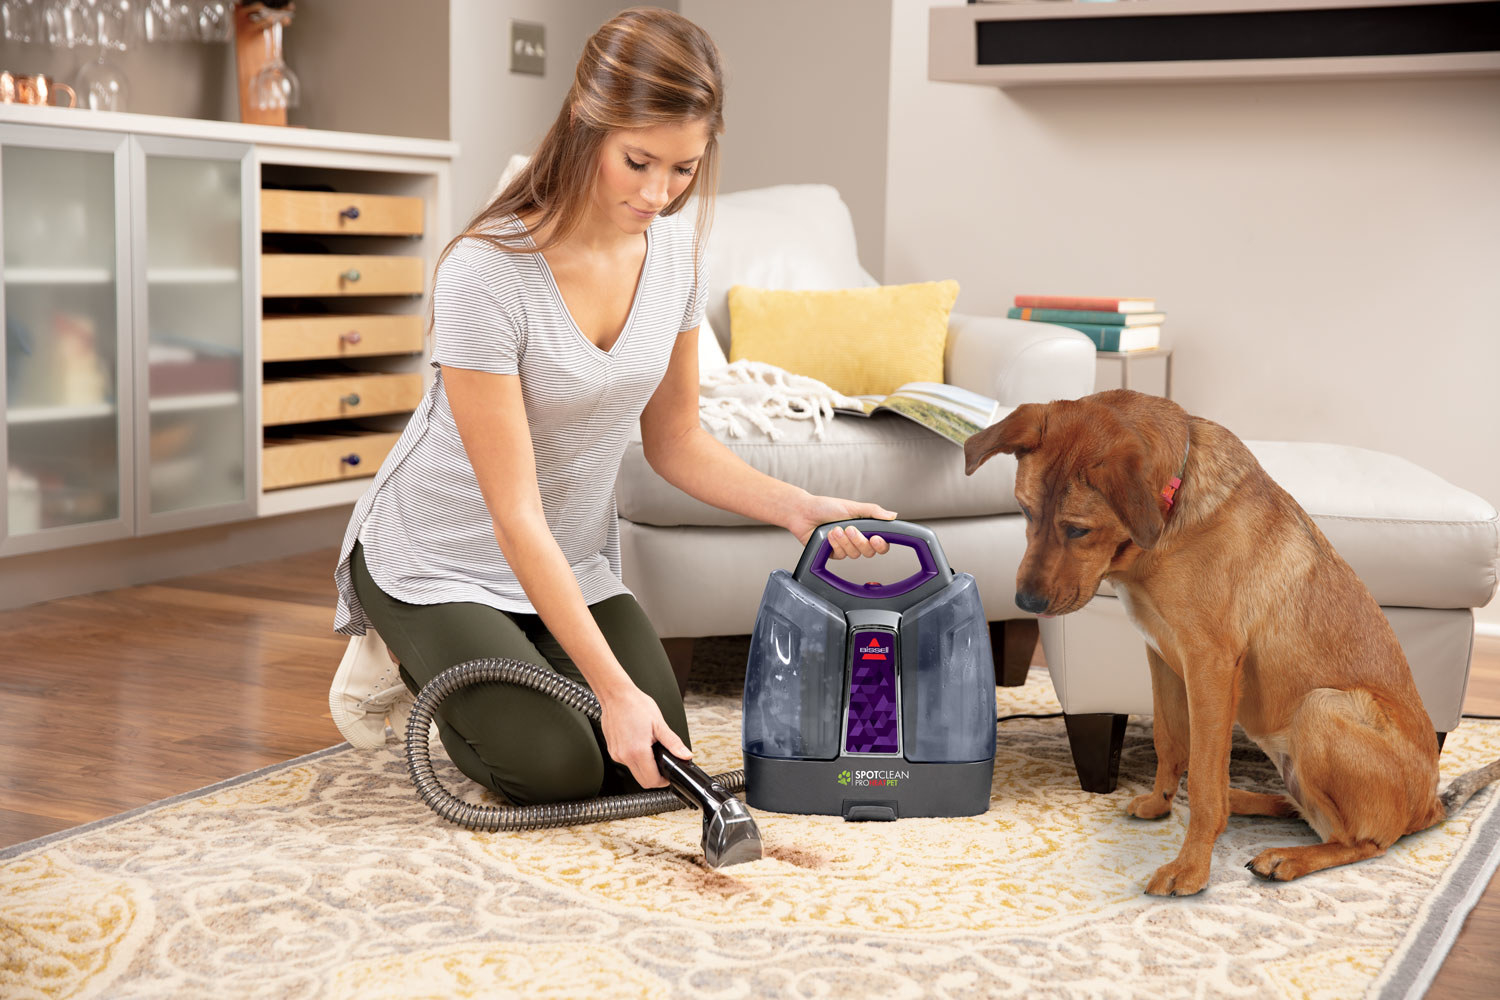 A person cleaning a stain on their carpet with the small handheld cleaner. Their dog is watching, guiltily.